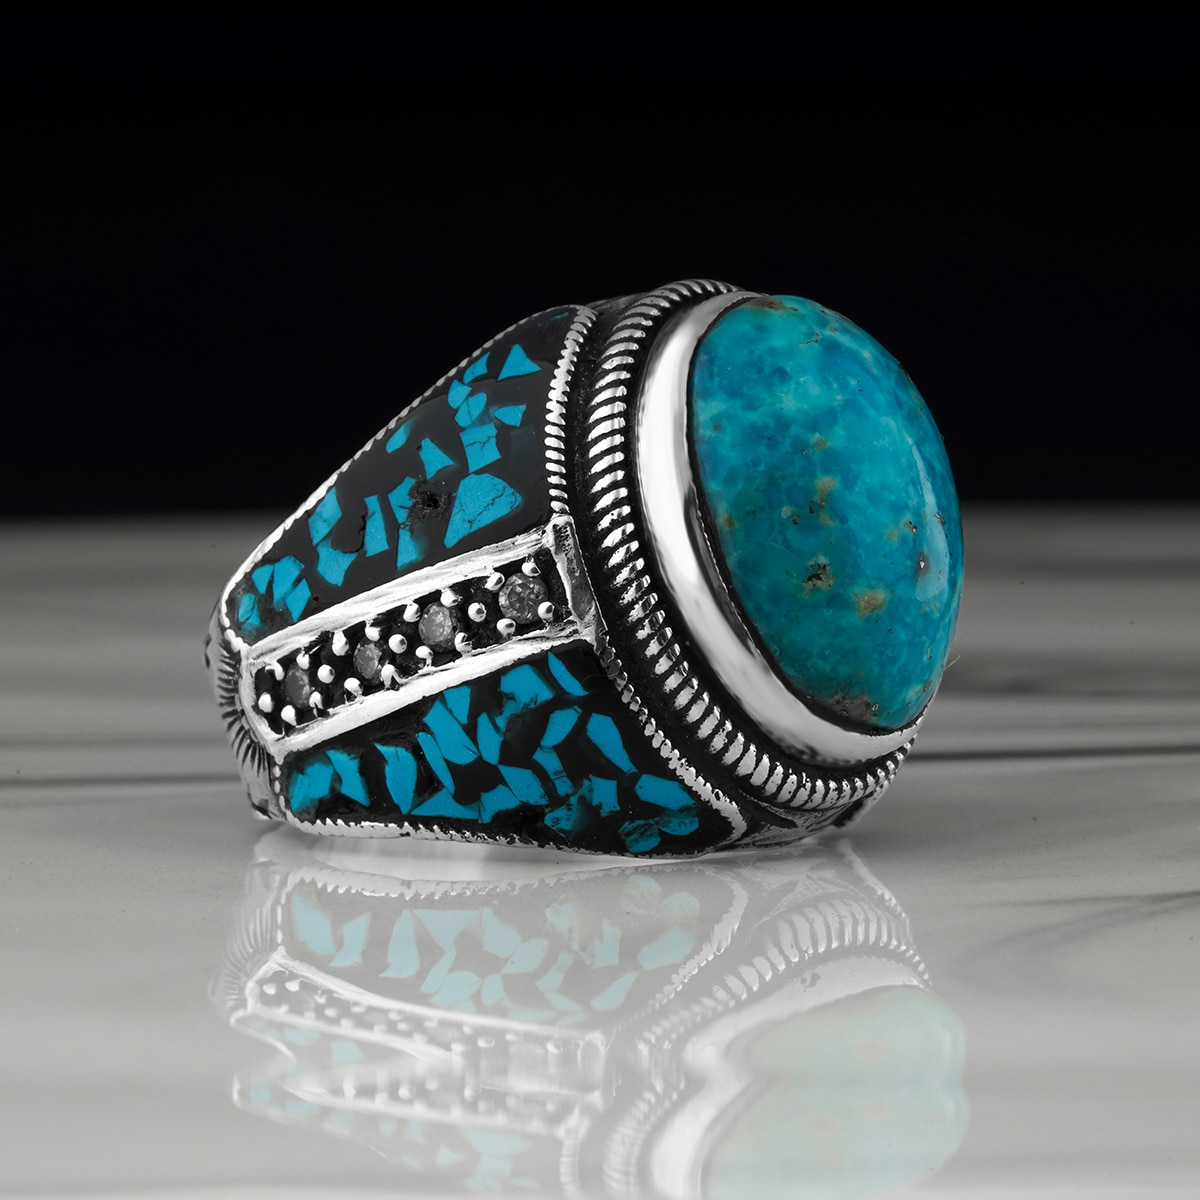 925 Sterling Silver Men's Ring with Turquoise Stone High Polishing othic Party Anniversary Middle East Turkish Jewelry,ring